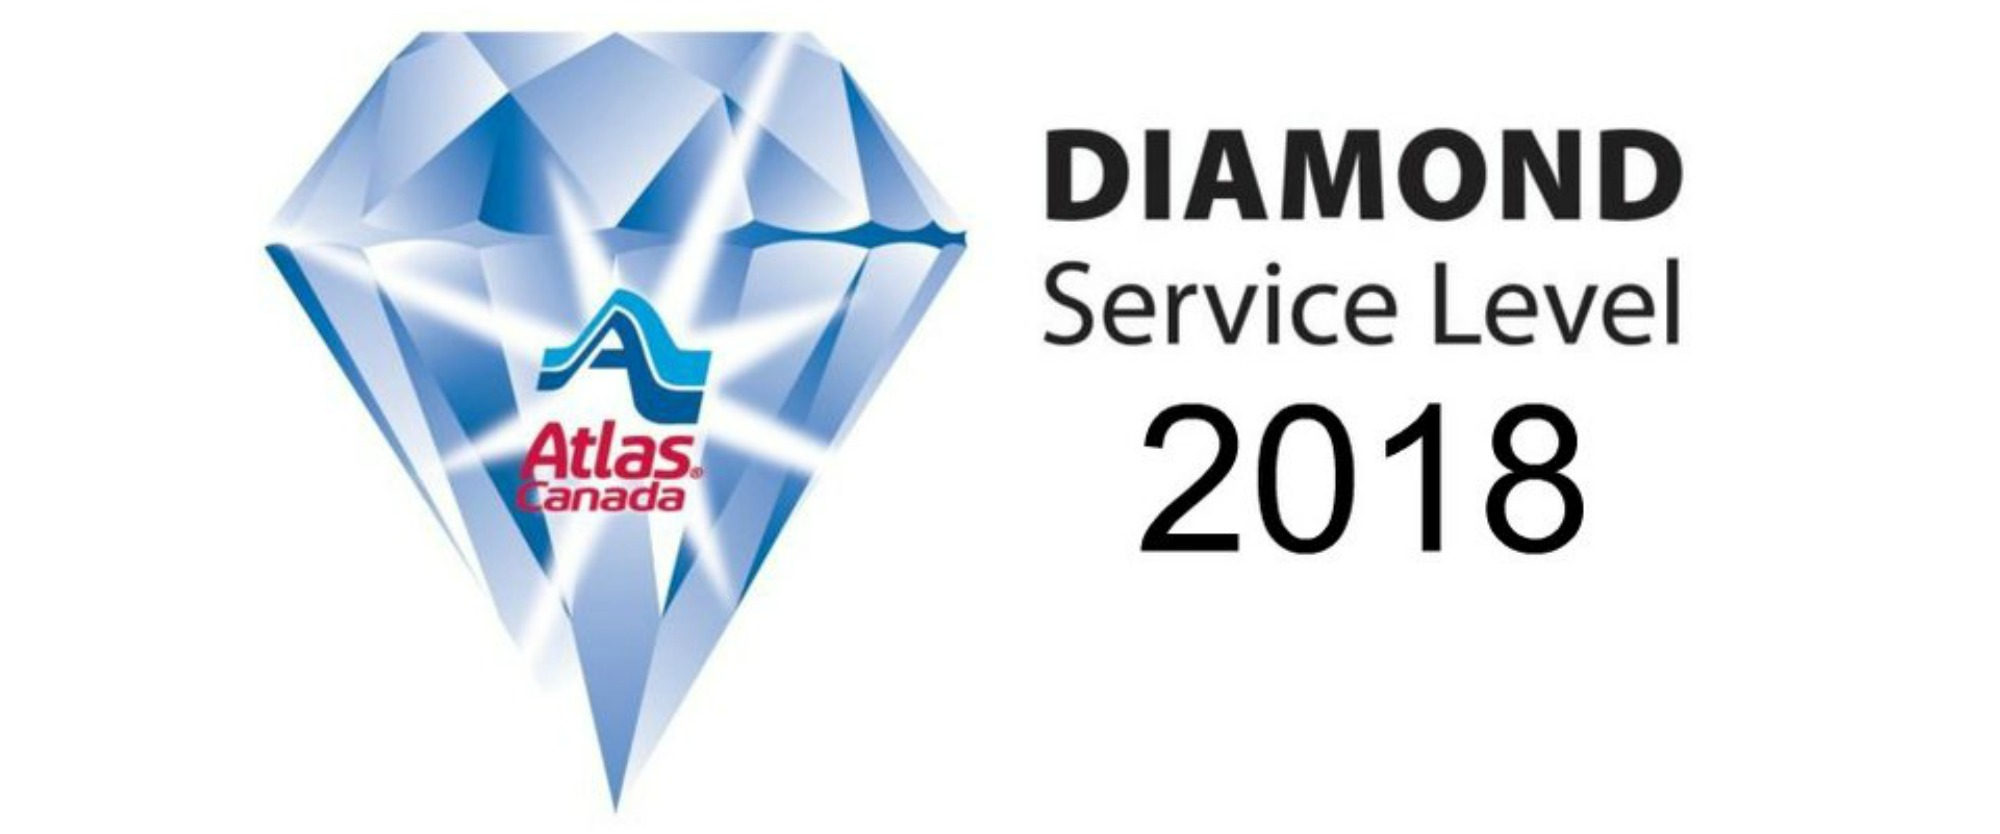 King's Transfer Van Lines Calgary is proud to be a Platinum level award winning agent for Atlas Van Lines. We are licensed, trained and equipped to handle your move.